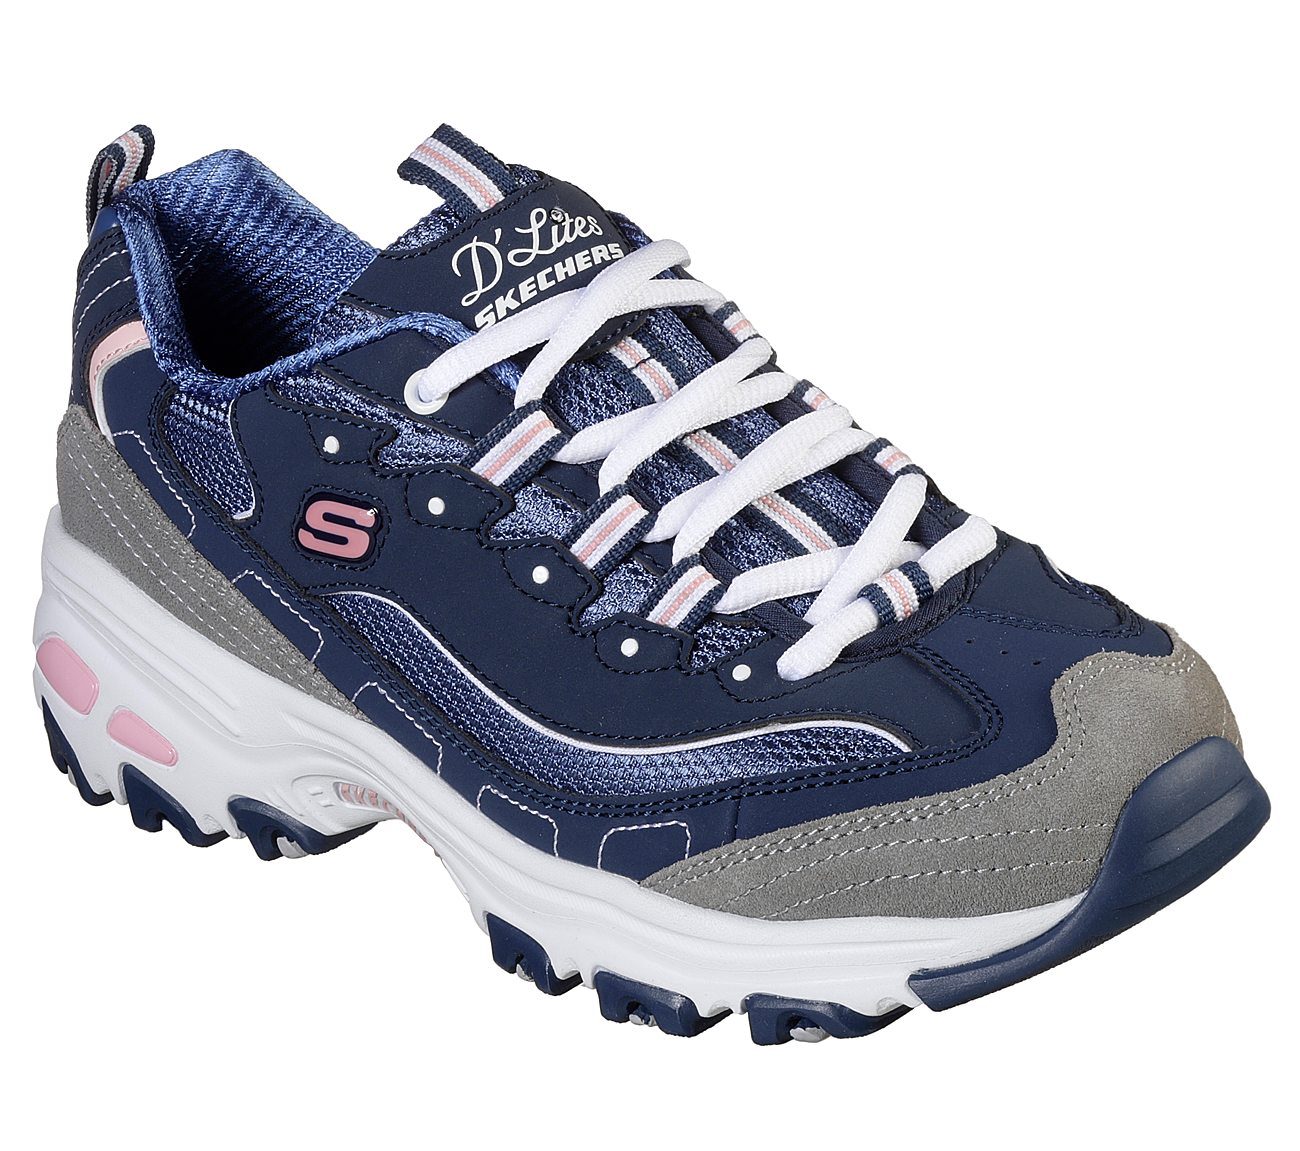 skechers shoes calgary